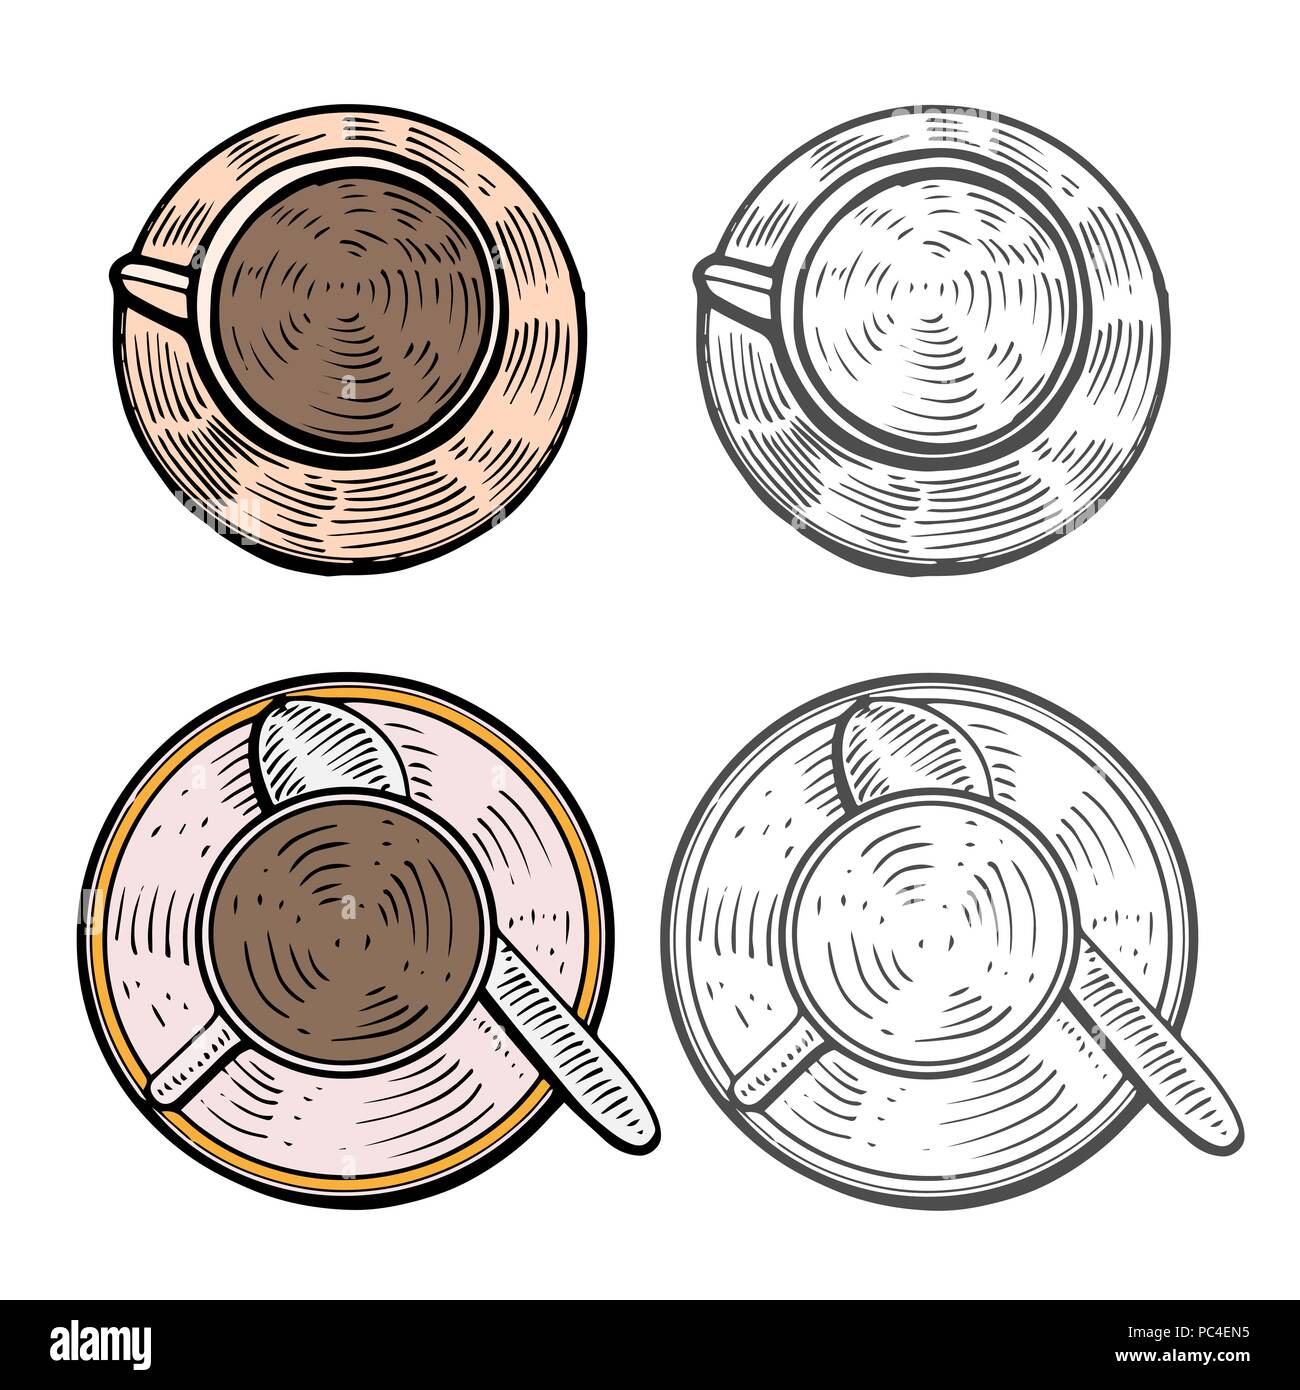 hand drawn. Cups with hot coffee, tea or cocoa beverages. Colorful design template. - Stock Vector